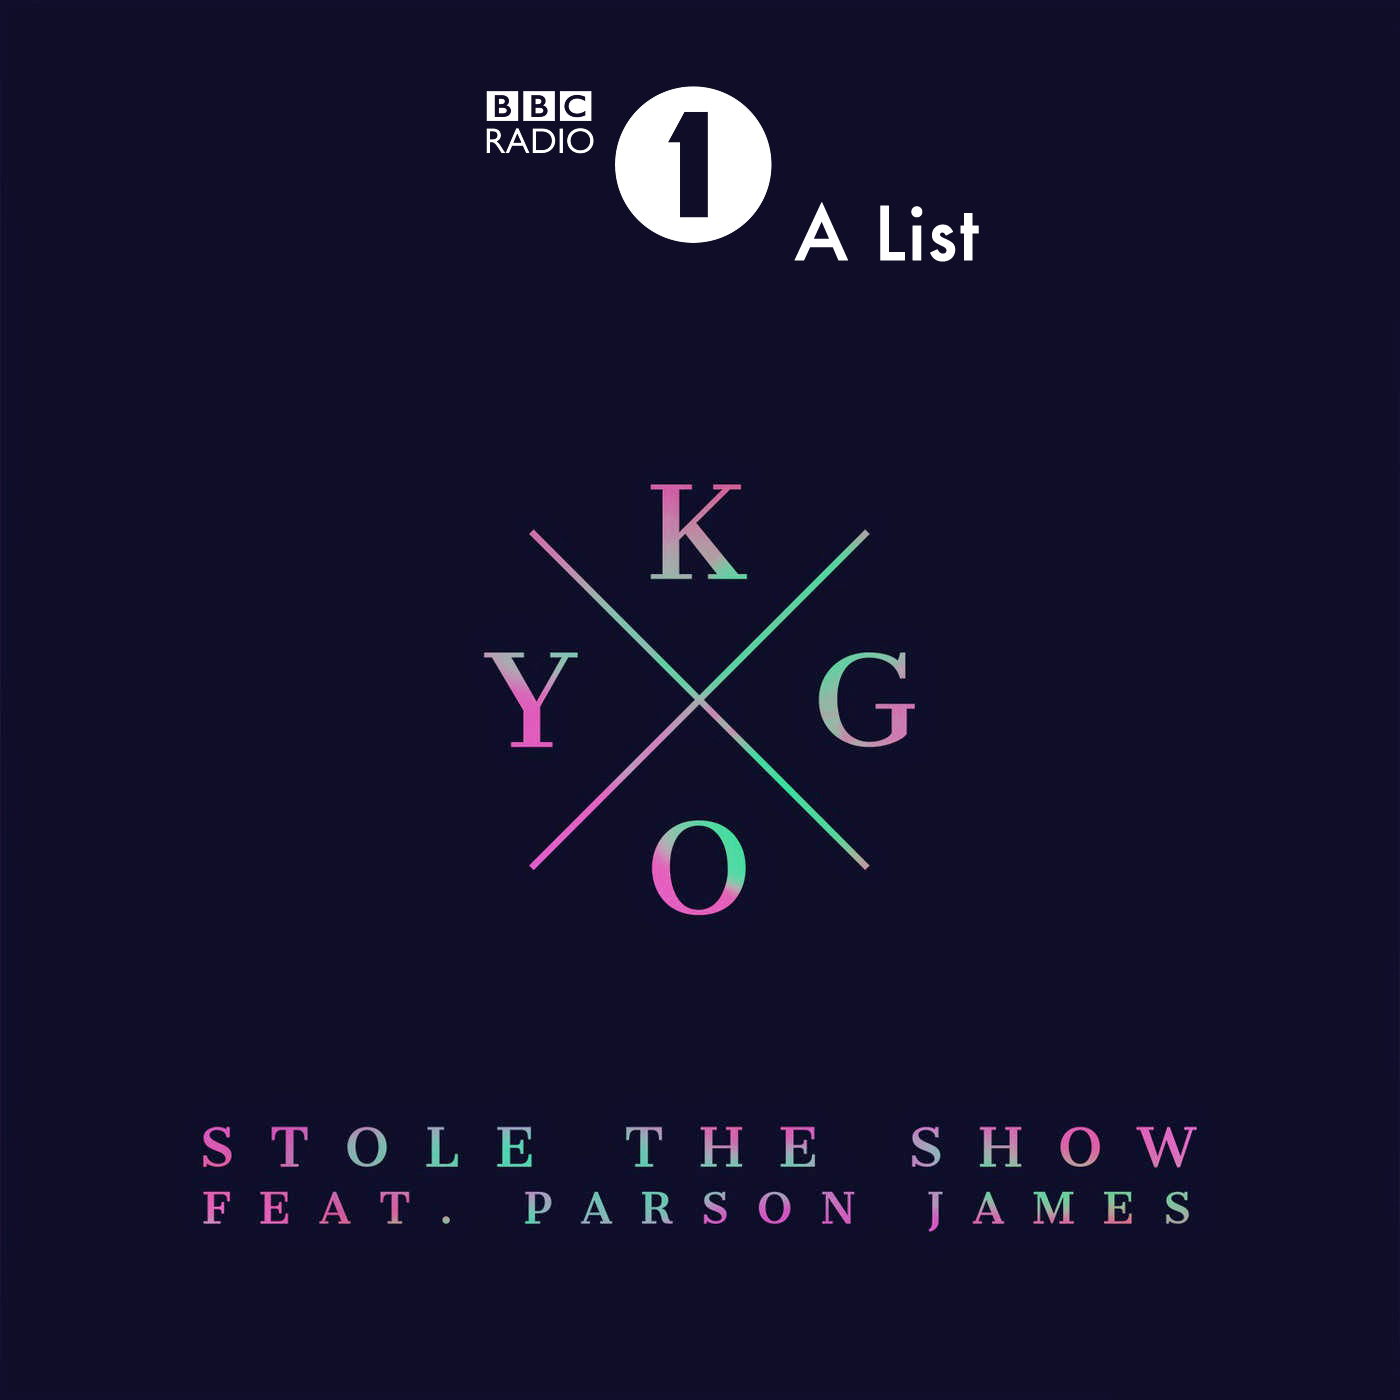 Kygo's 'Stole The Show' reaches Radio 1 A playlist!